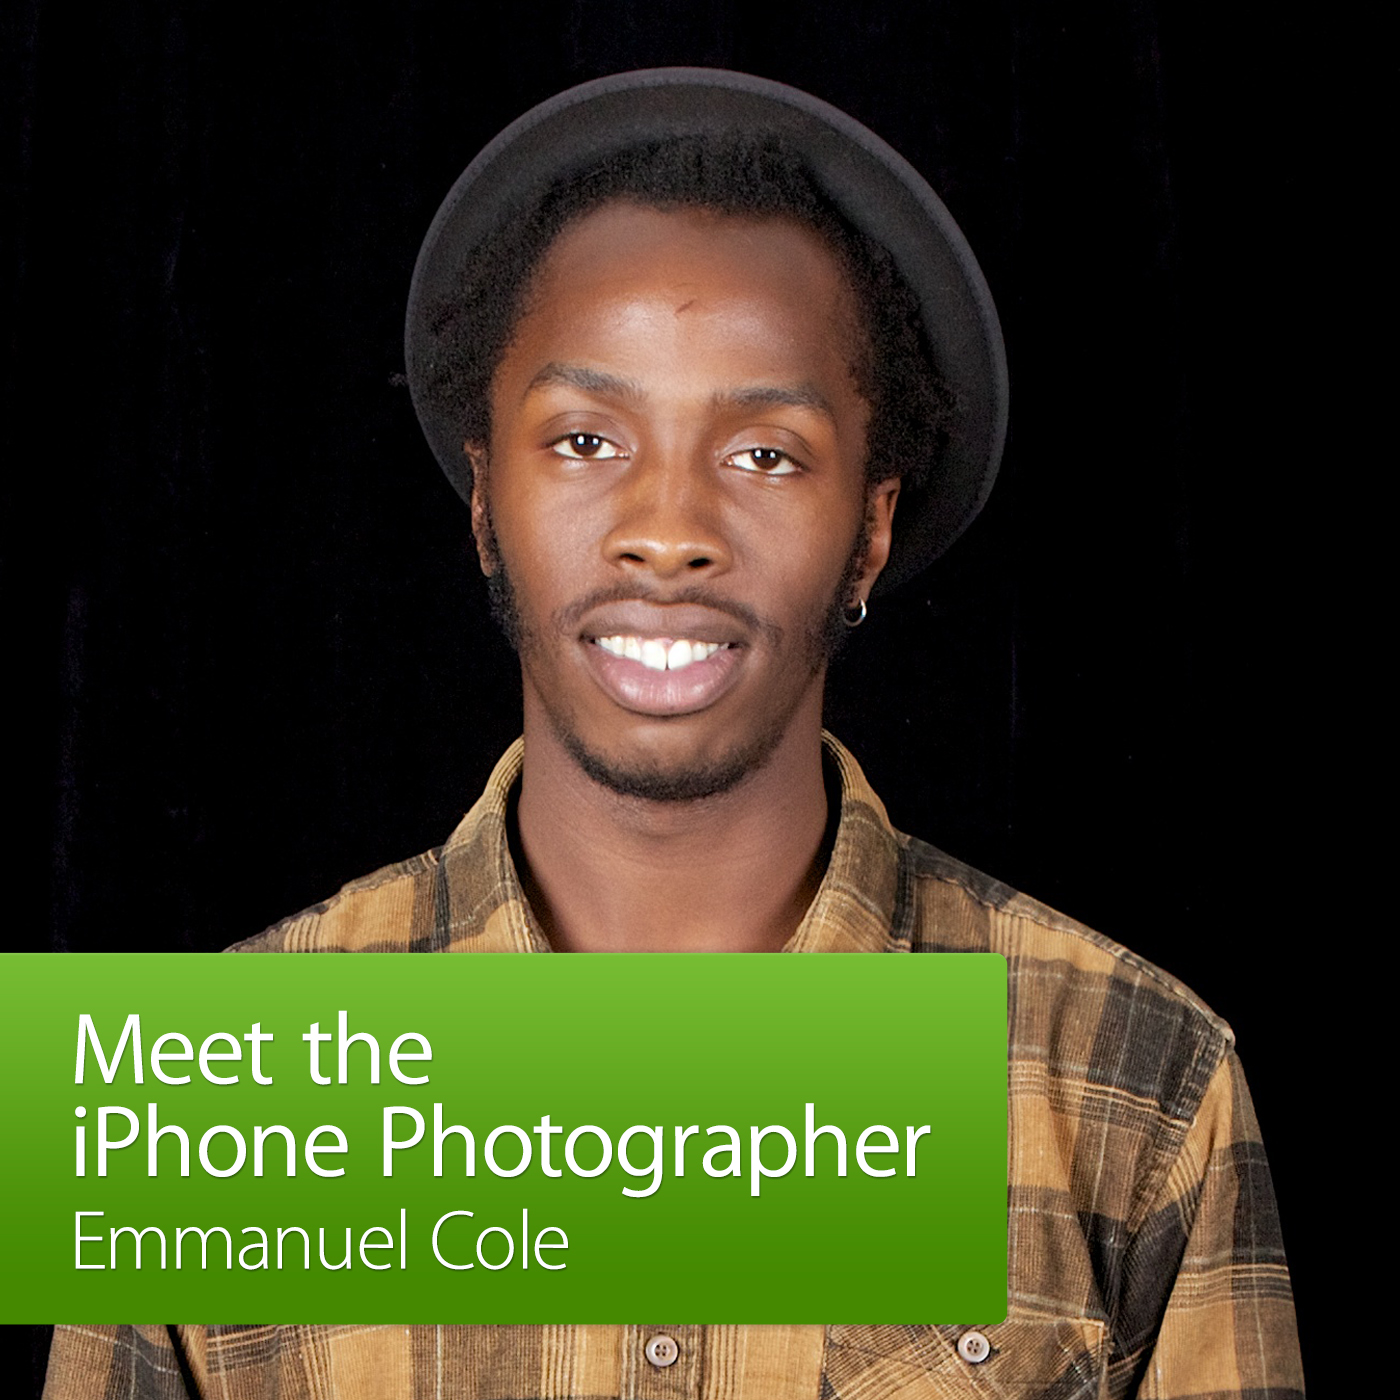 Emmanuel Cole: Meet the iPhone Photographer